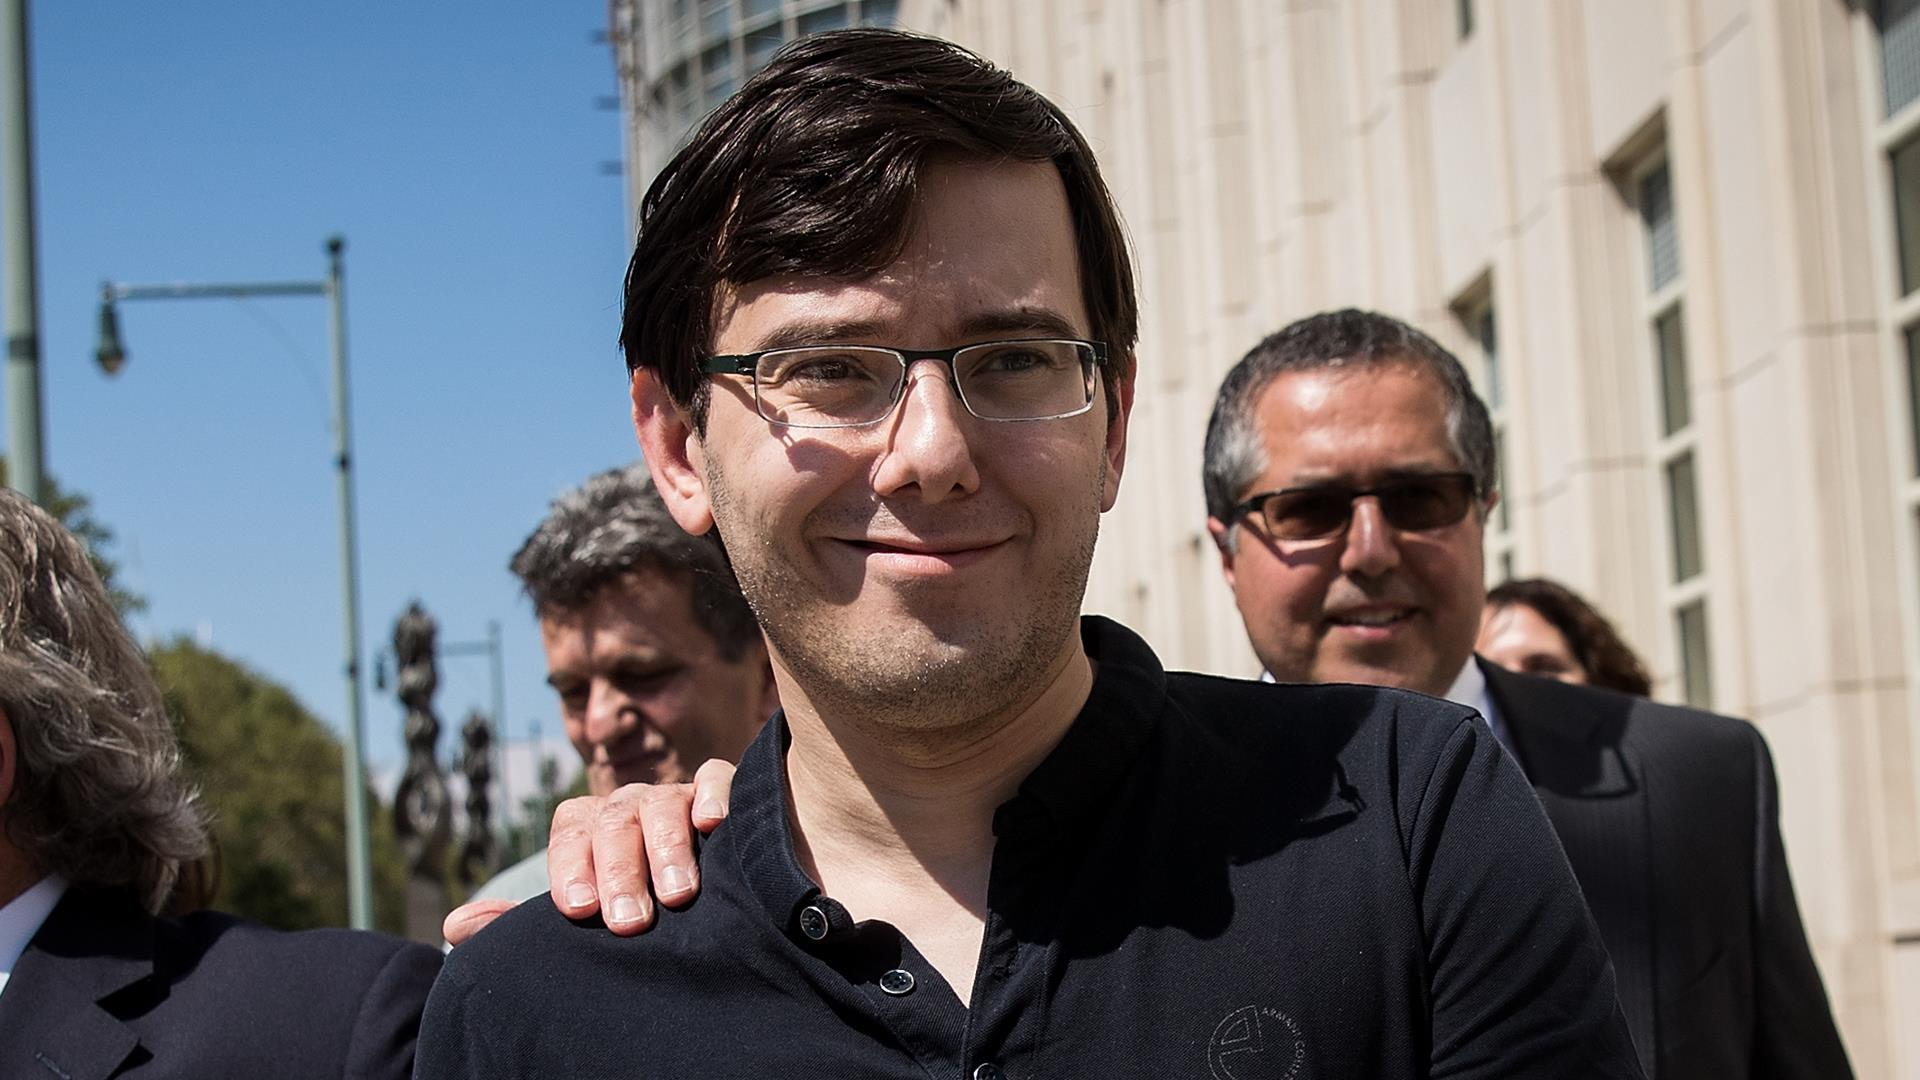 'Pharma Bro' Martin Shkreli Jailed at Tough Brooklyn Facility